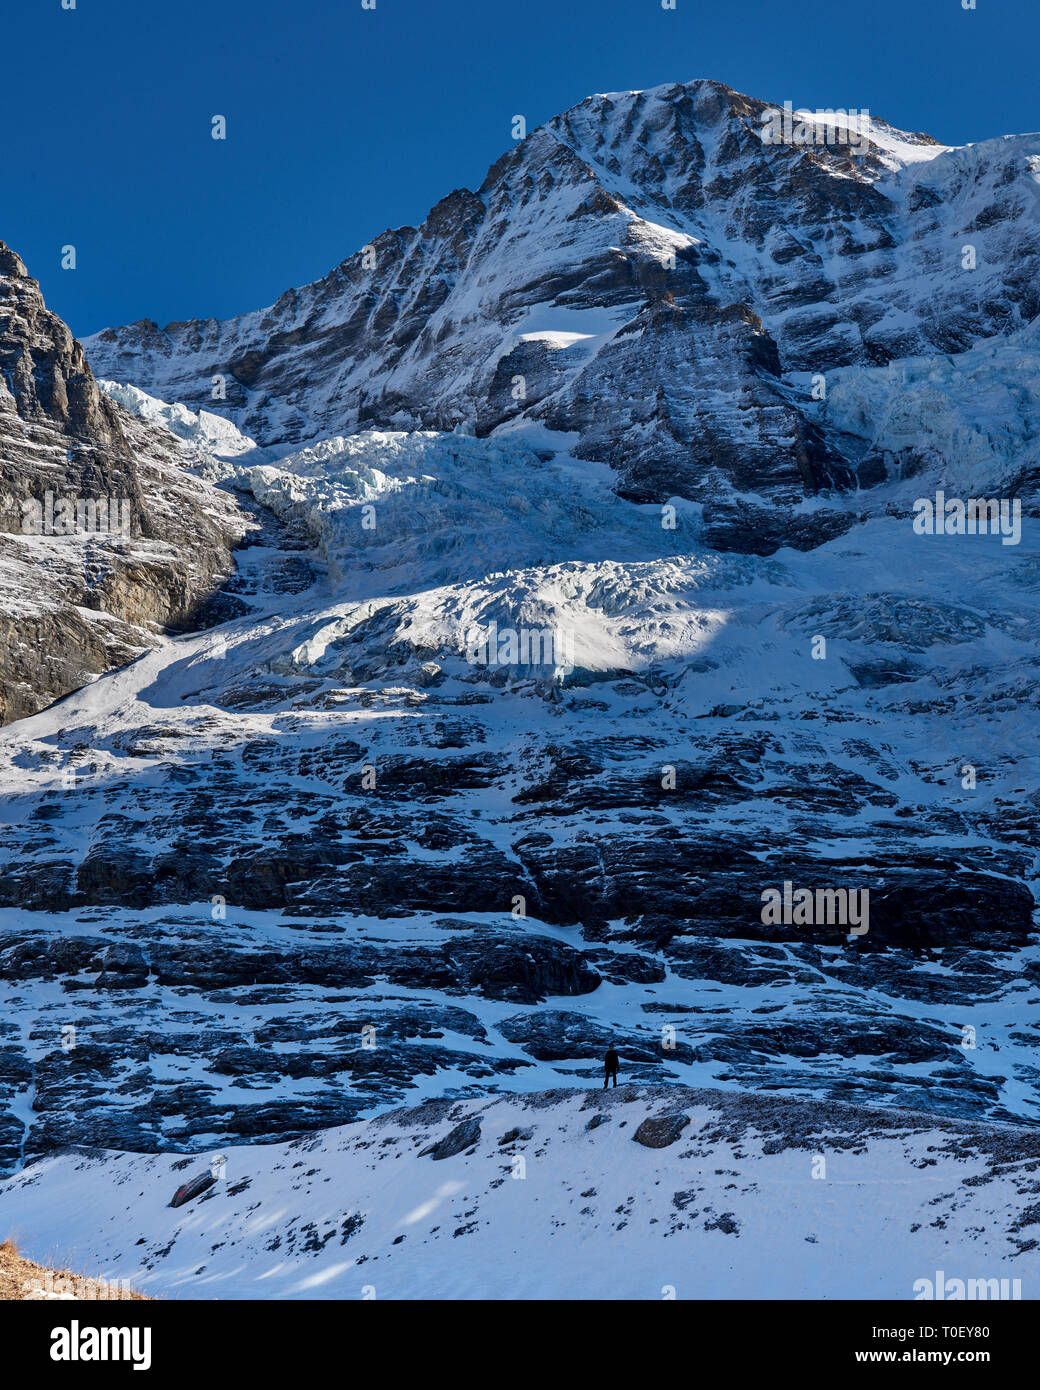 Unplugged in the Jungfrau region. Hiking in the foot of the mighty Eiger glacier. A tiny human figure providing scale. - Stock Image